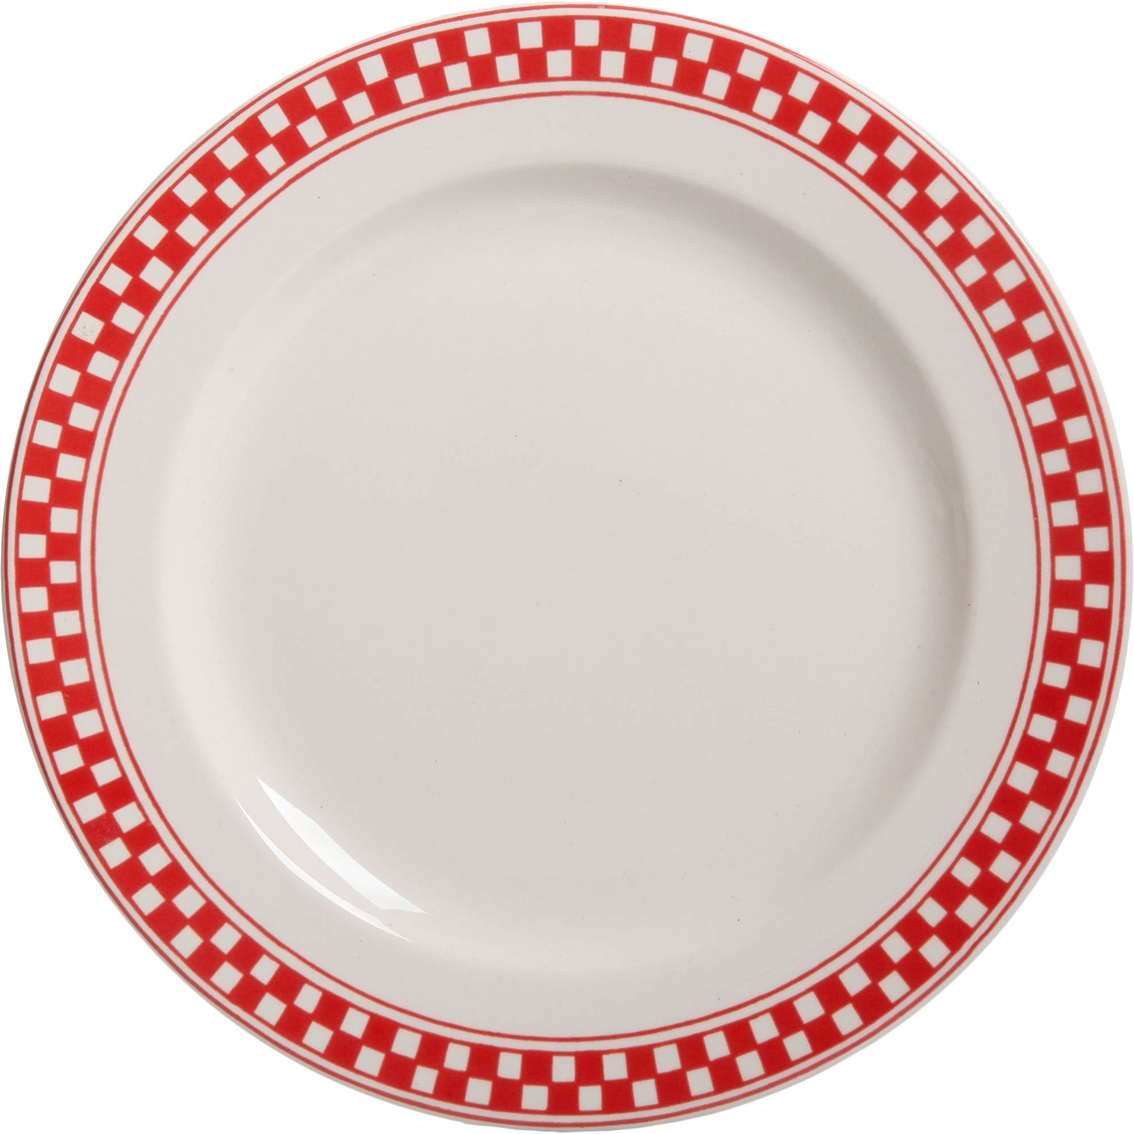 Gibson Home General Store Cherry Diner 10.25 in. Dinner Plate  sc 1 st  ShopMyExchange.com & Gibson Home General Store Cherry Diner 10.25 In. Dinner Plate ...